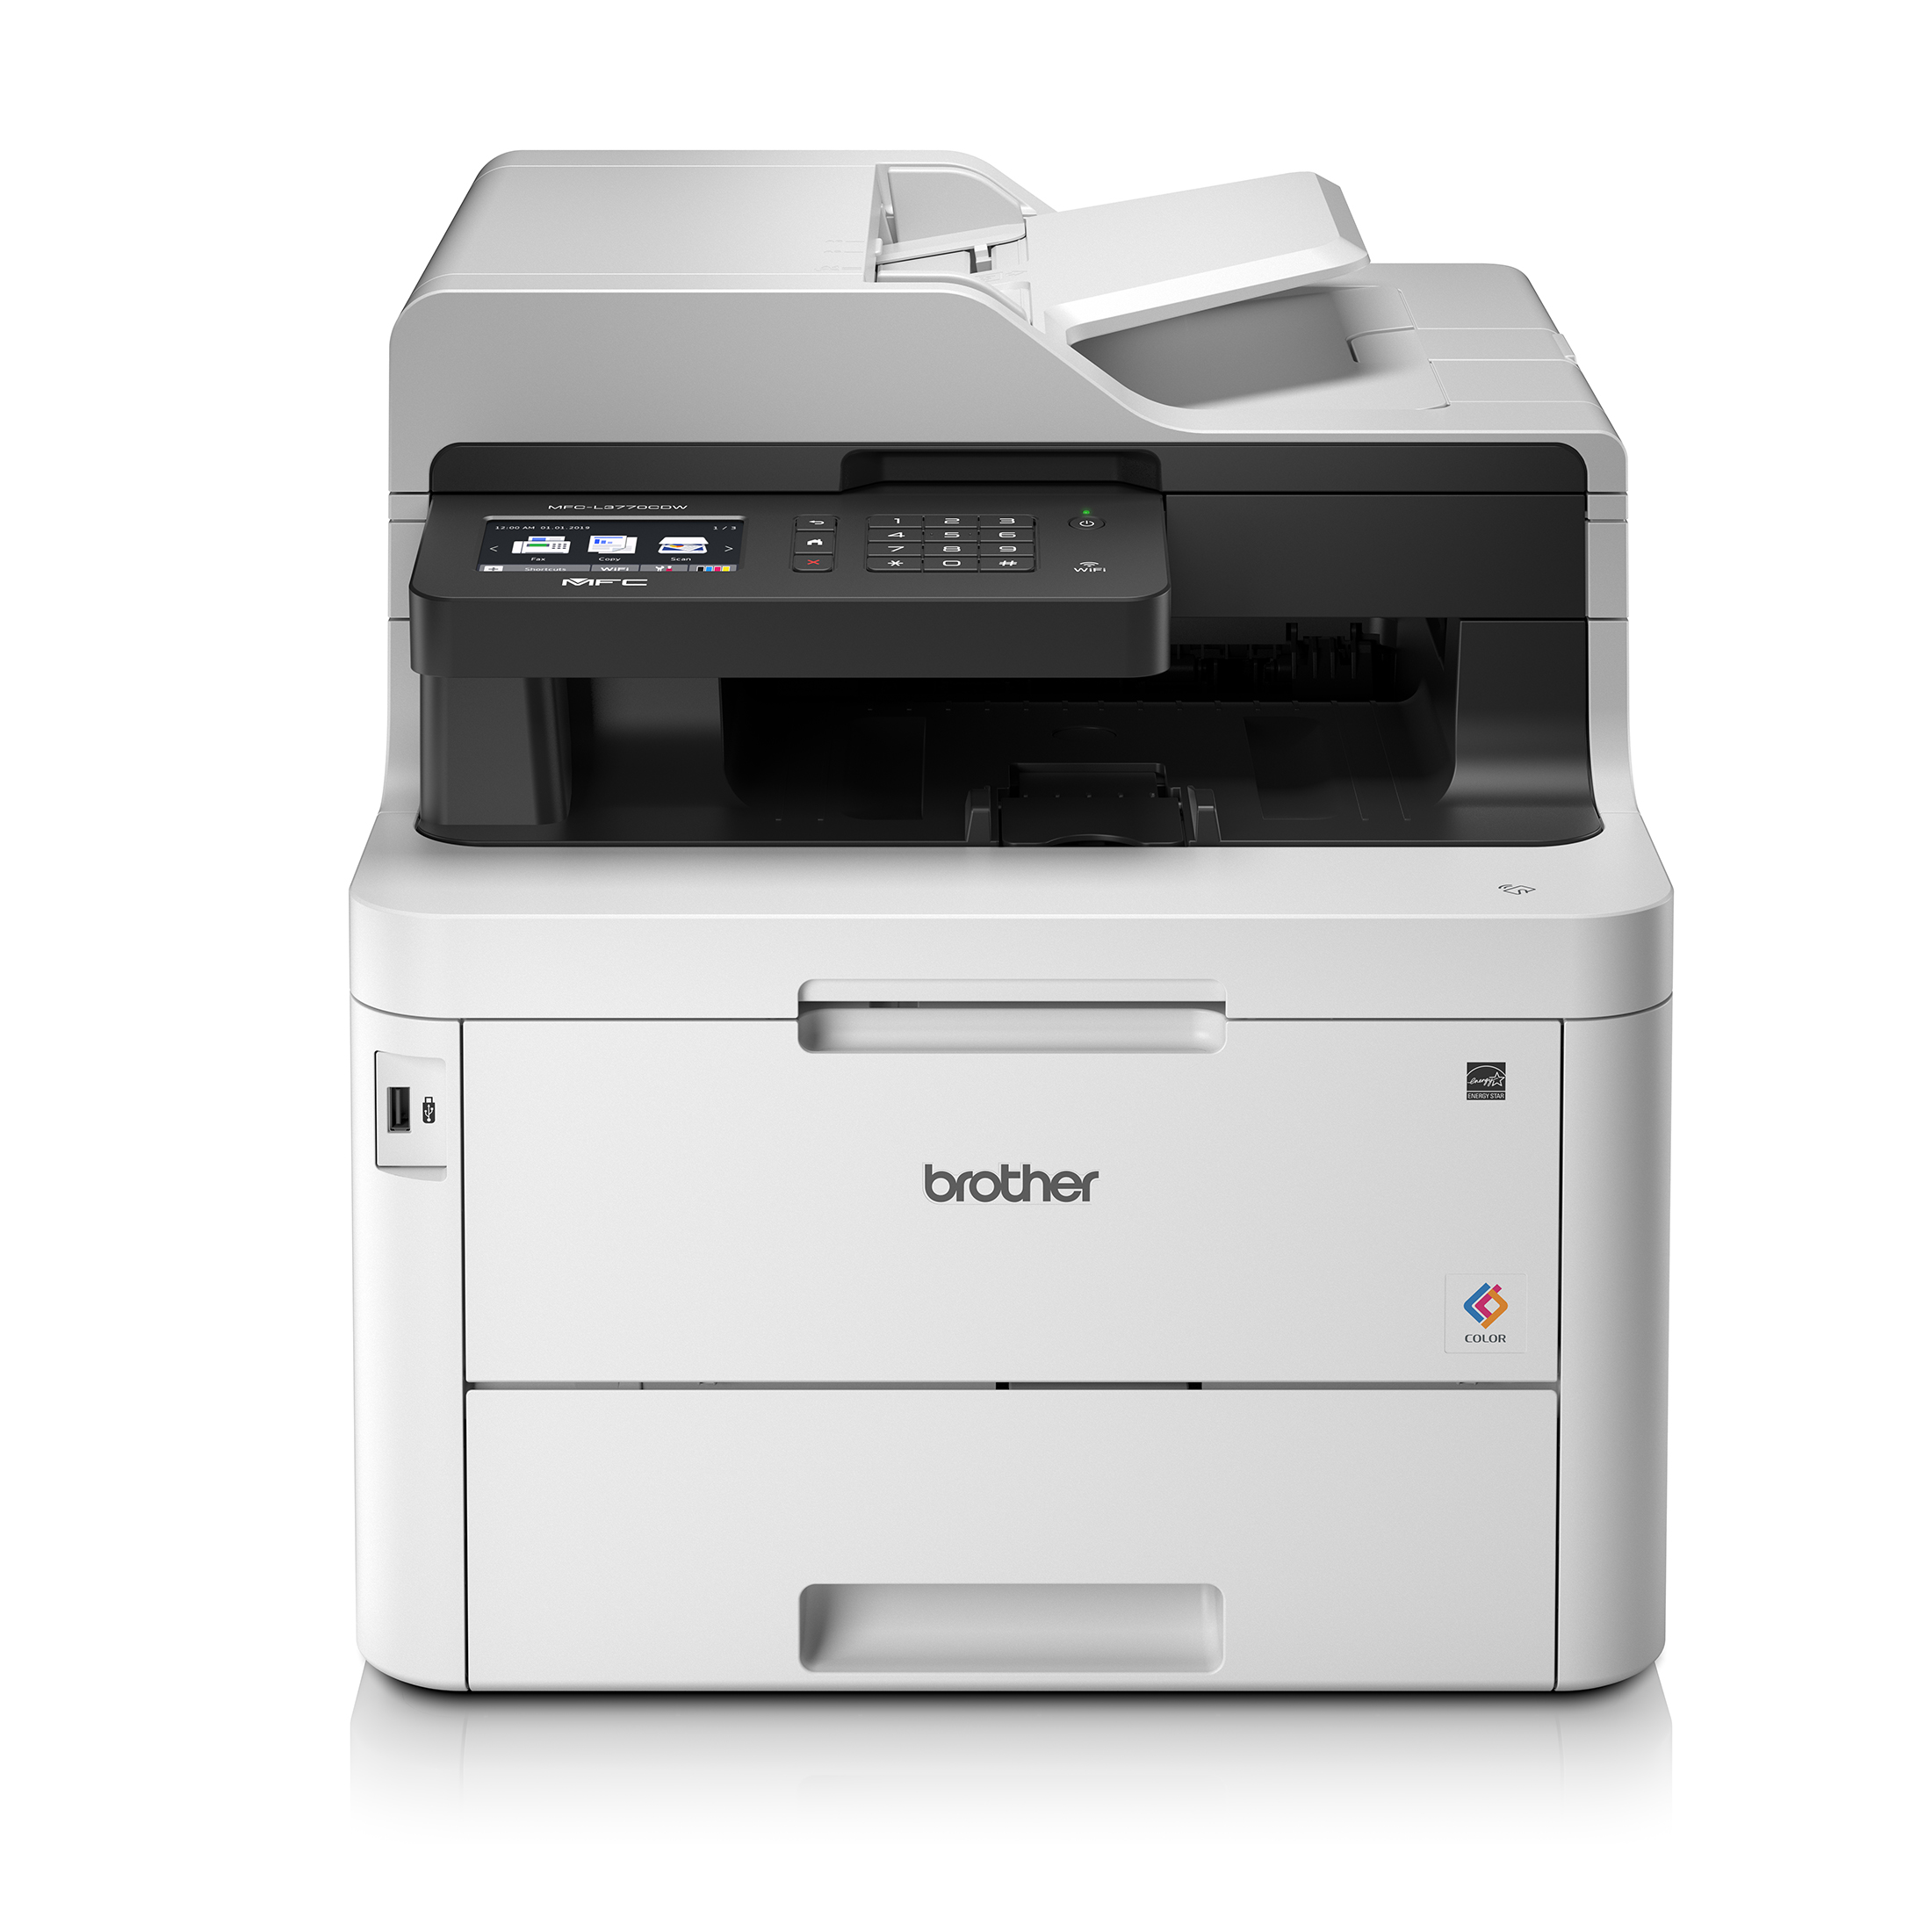 Multifunction Machines Brother MFC-L3770CDW Colour Laser Printer Wireless 4-in-1 with integrated NFC Ref MFC-L3770CDW